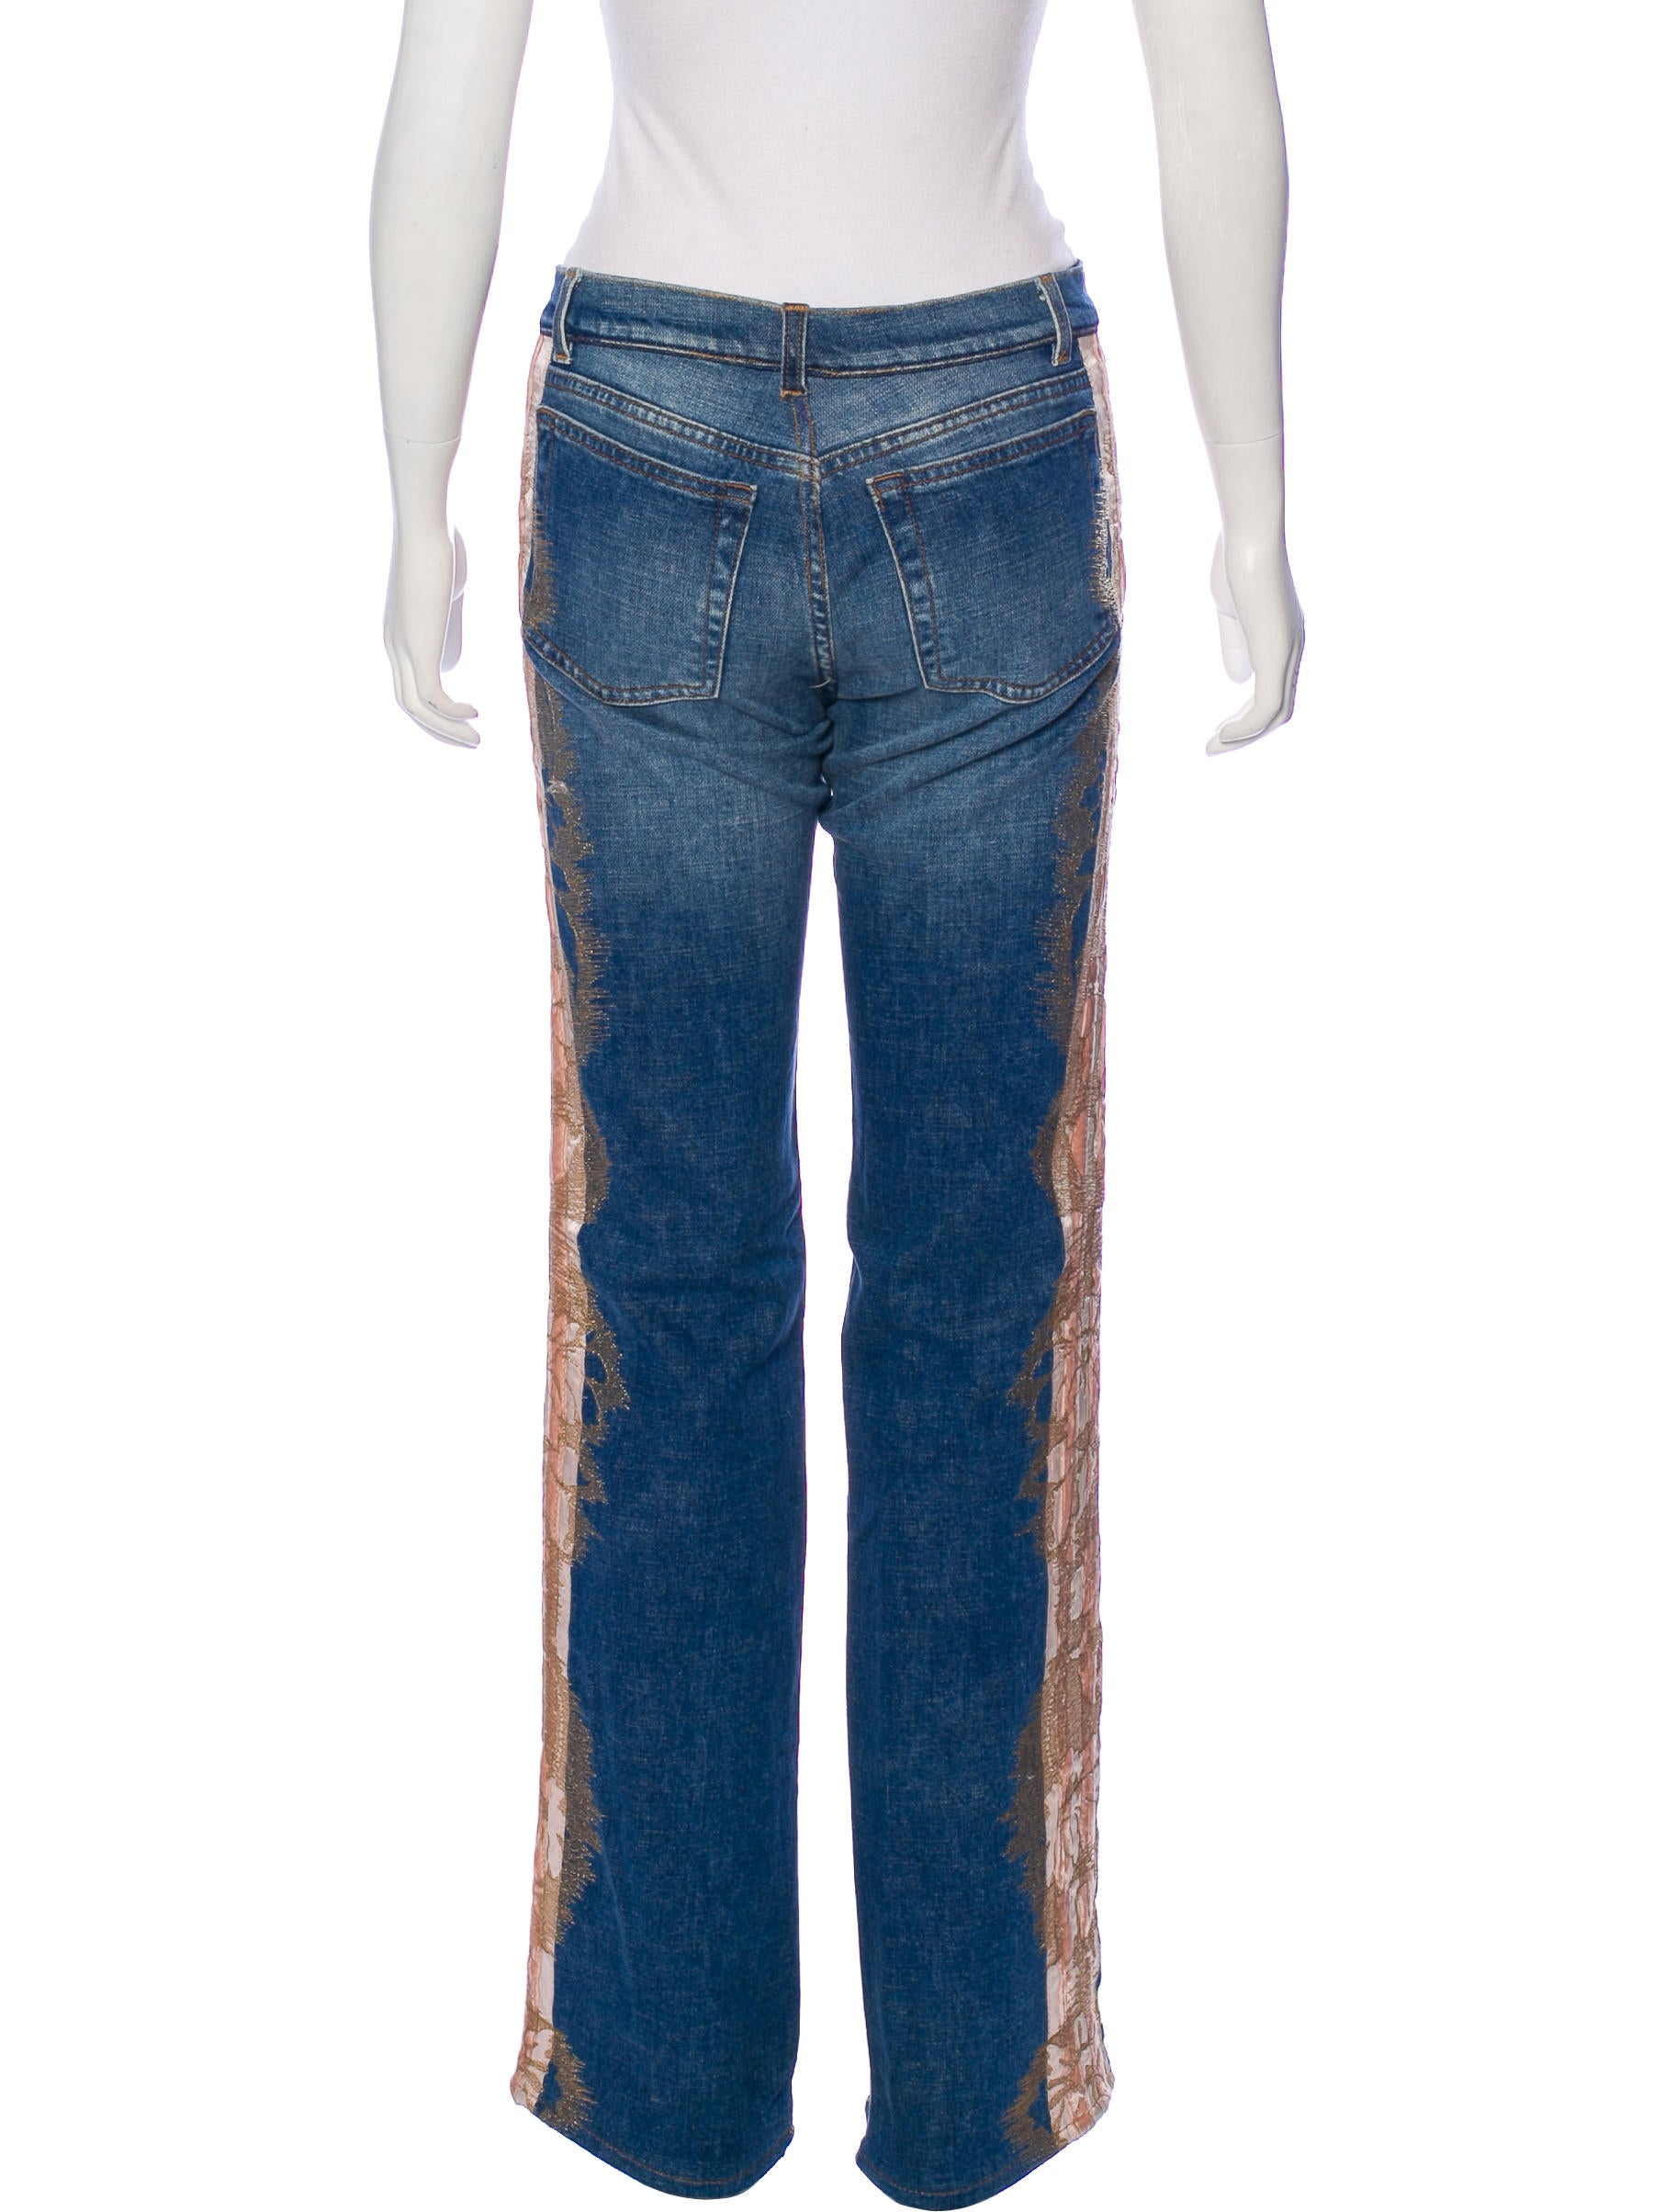 Roberto Cavalli Embroidered WideLeg Jeans  Clothing